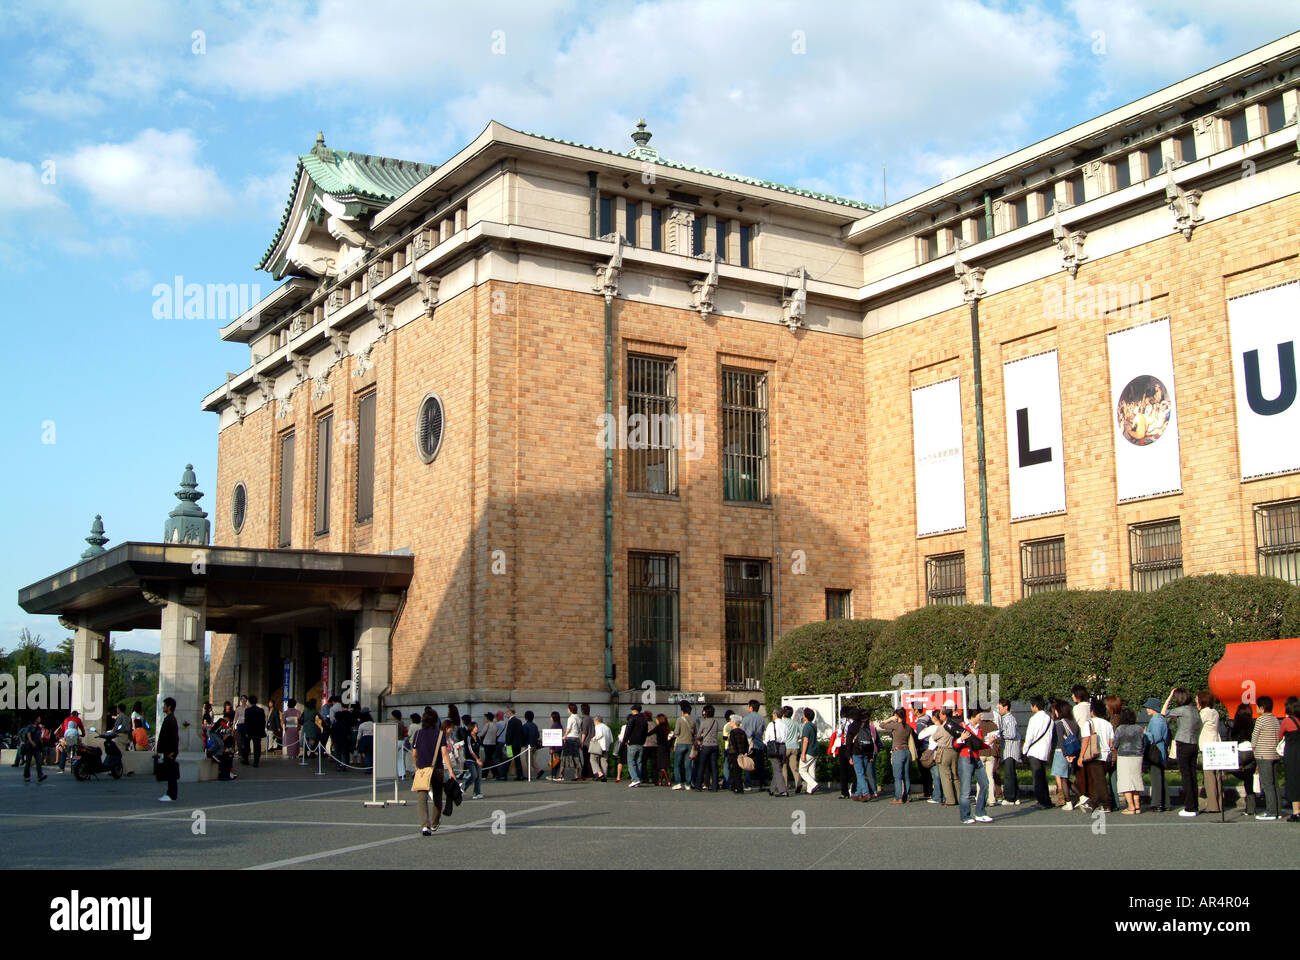 Queue for the Louvre Exhibition at Municipal Museum of Art Kyoto Japan October 2005 - Stock Image